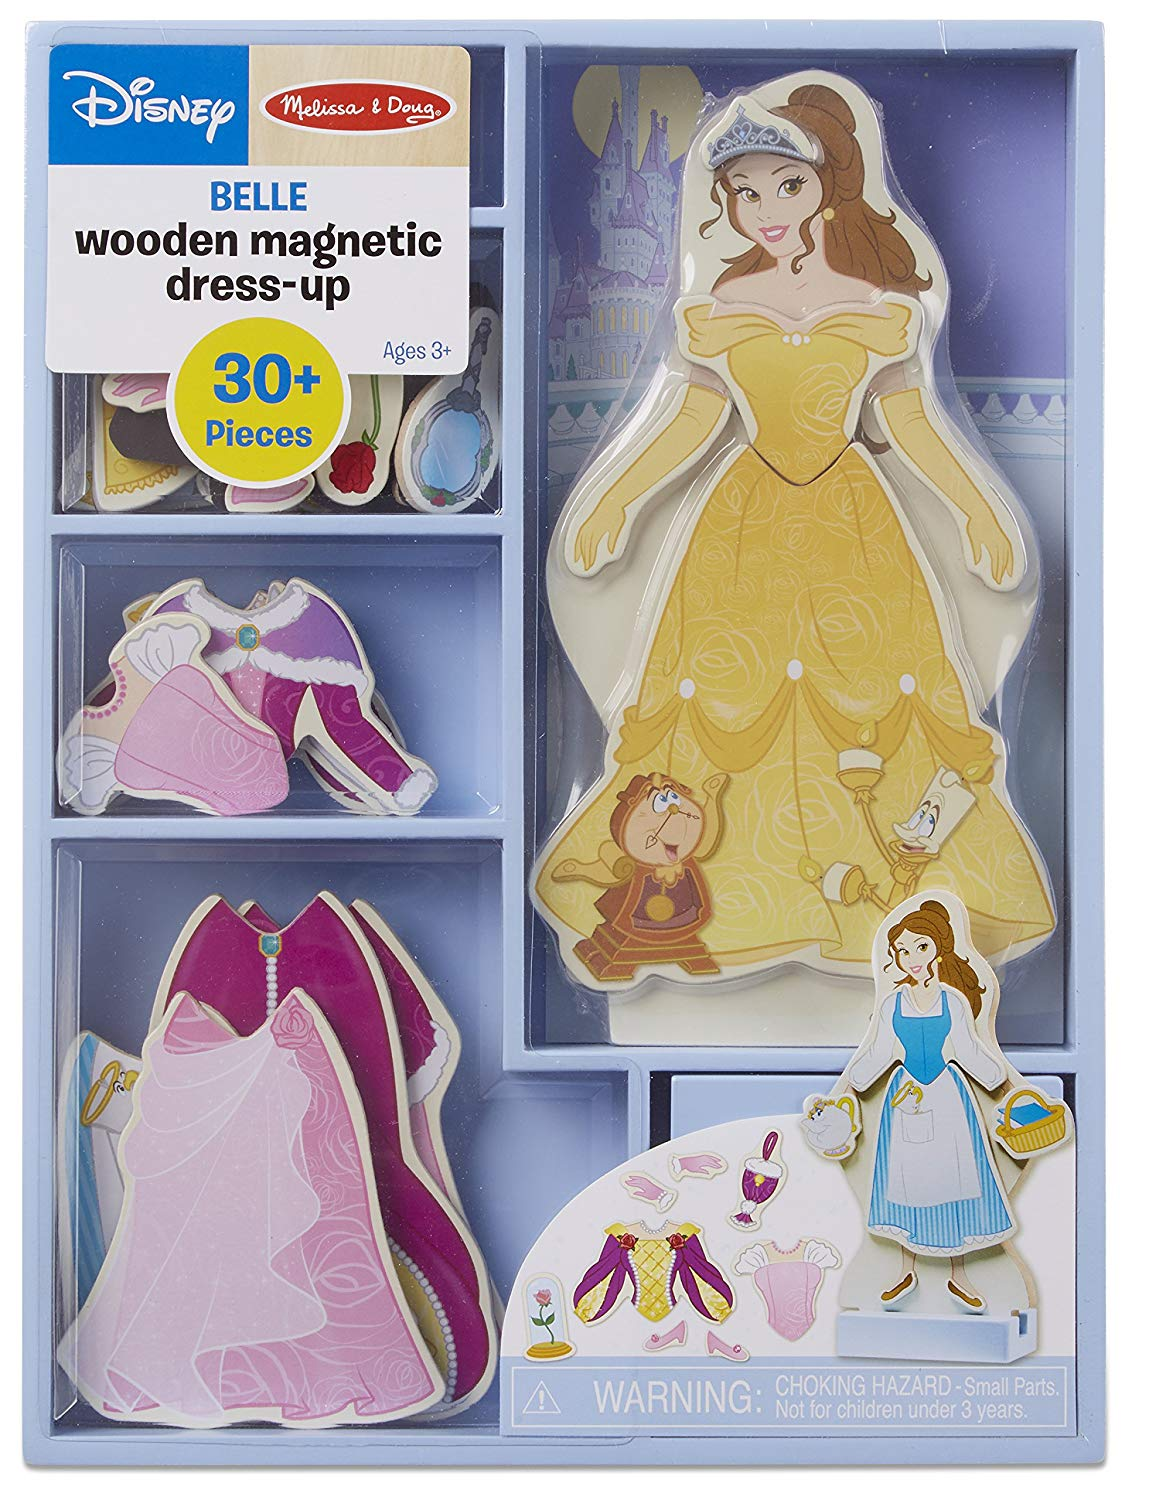 Disney Beauty and the Beast toy for girls